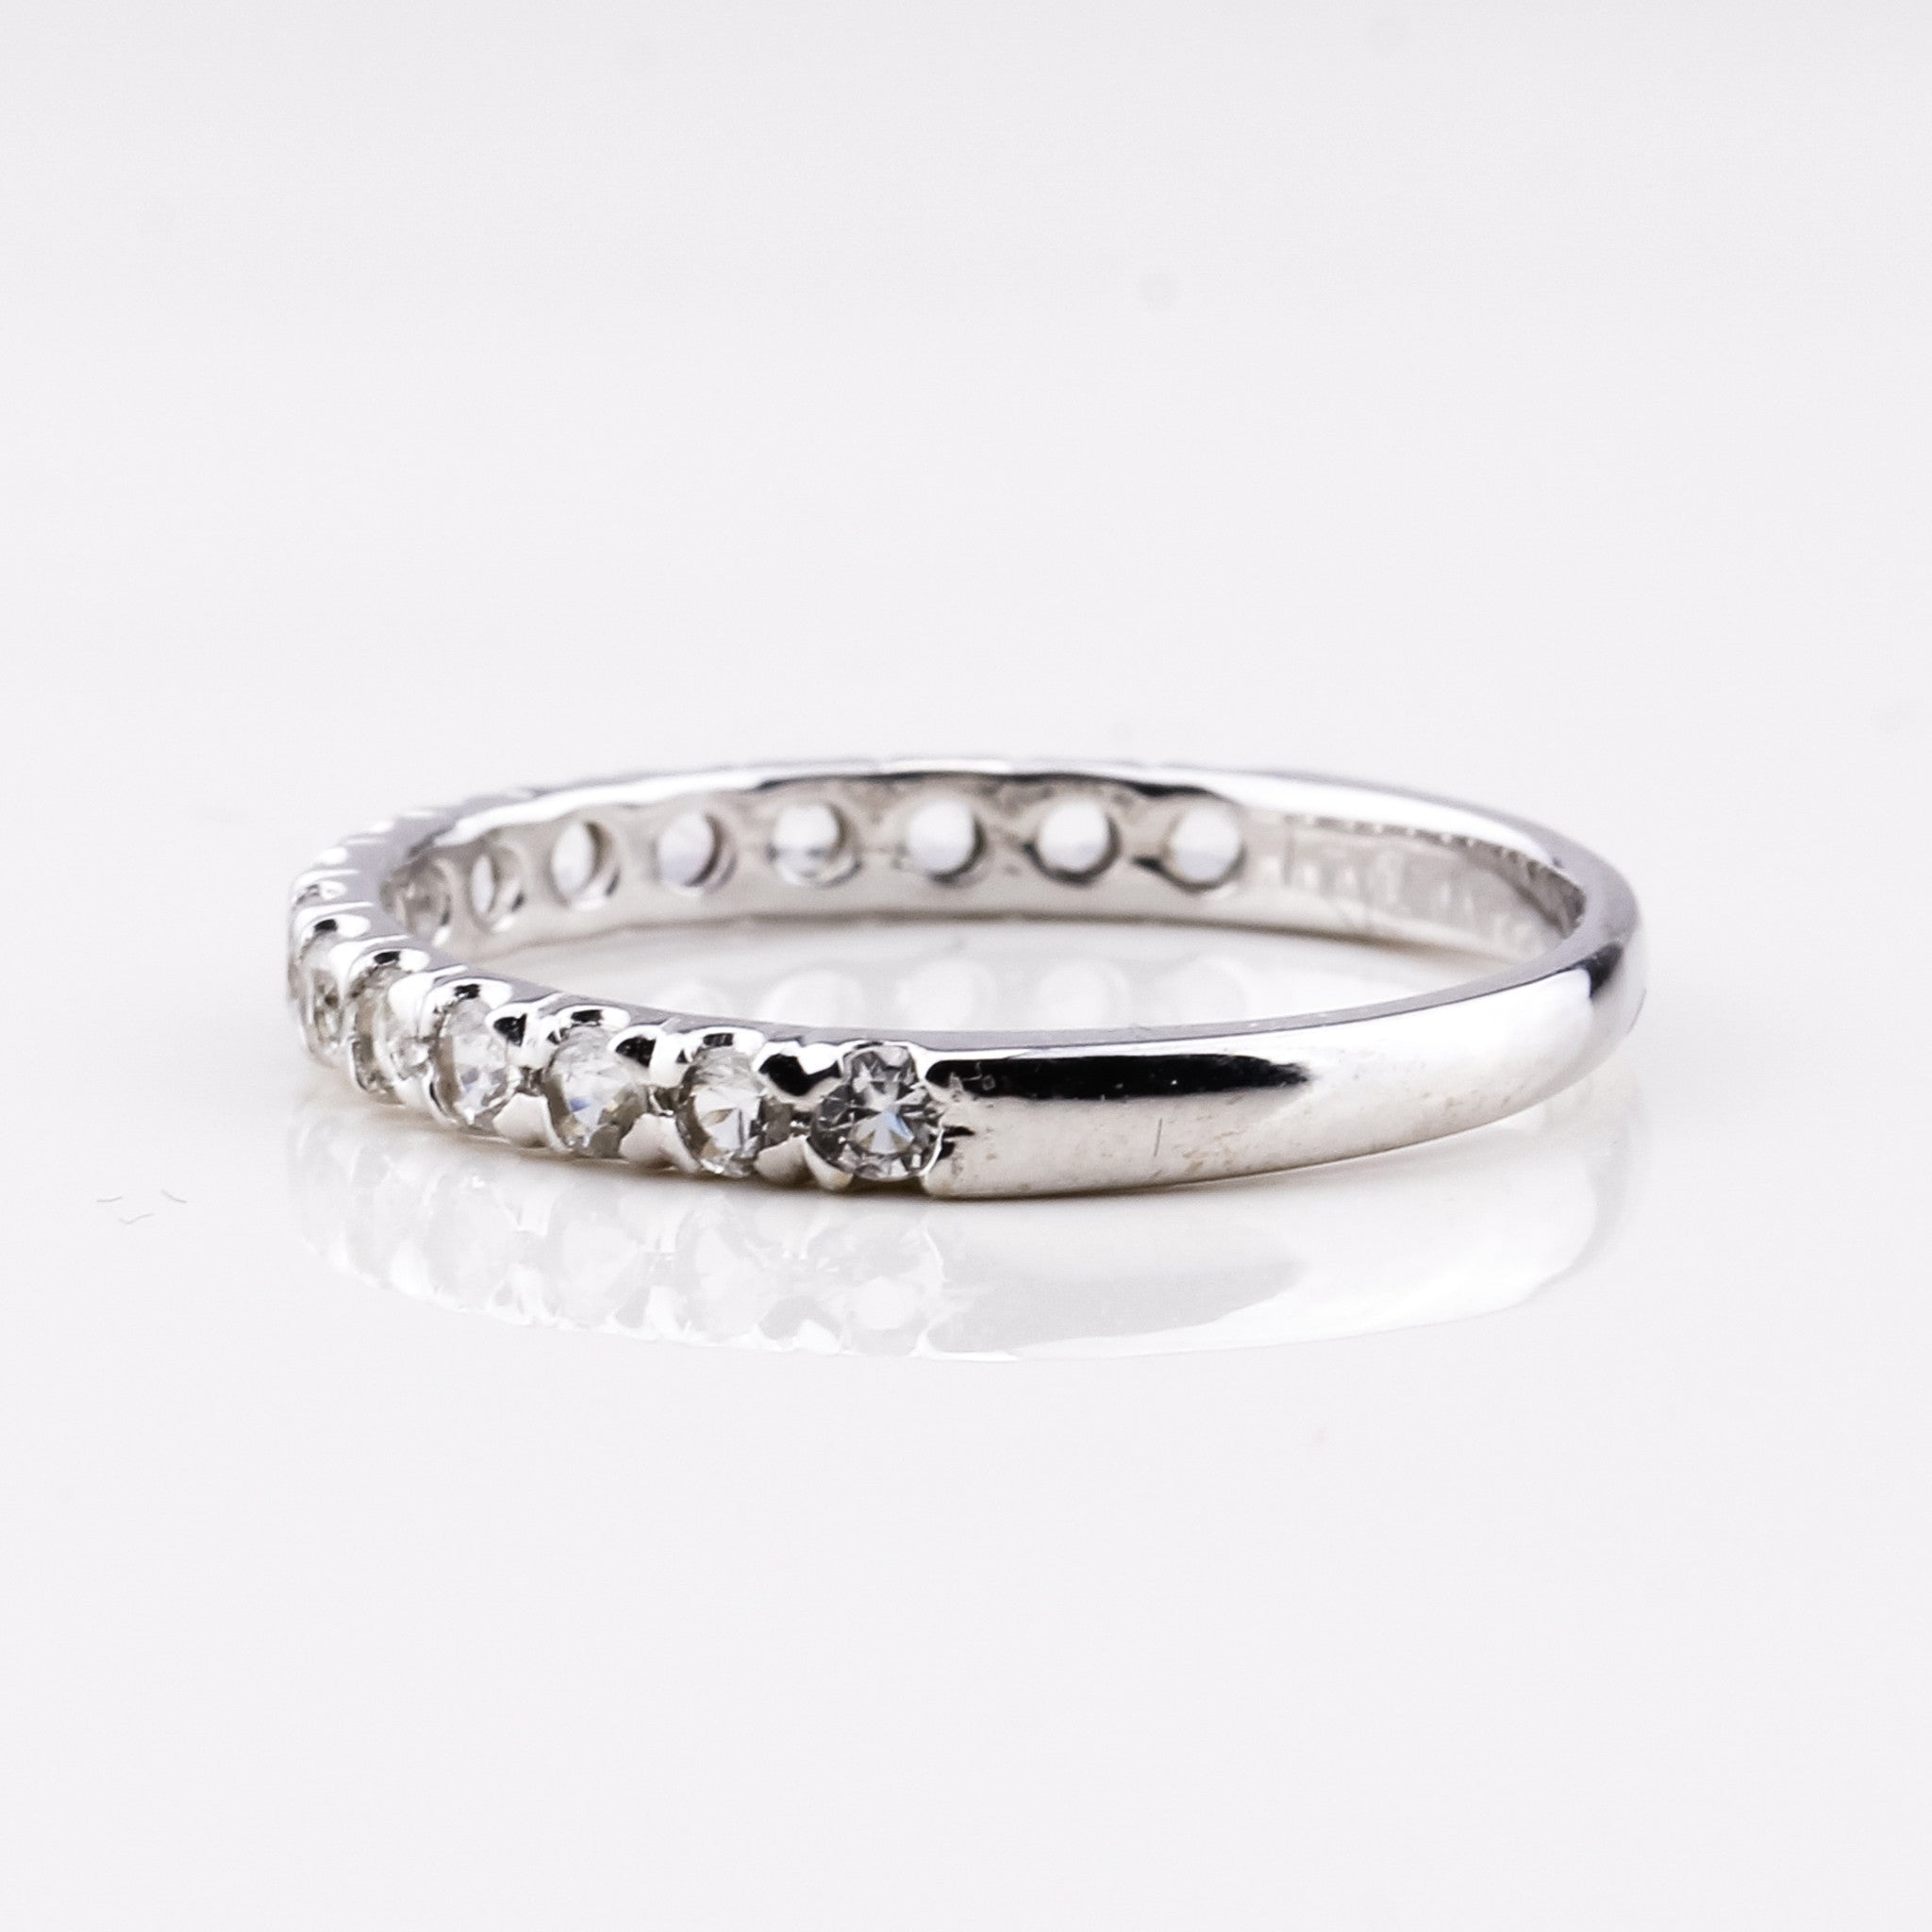 Half Eternity Ring - White Gold & Zircon